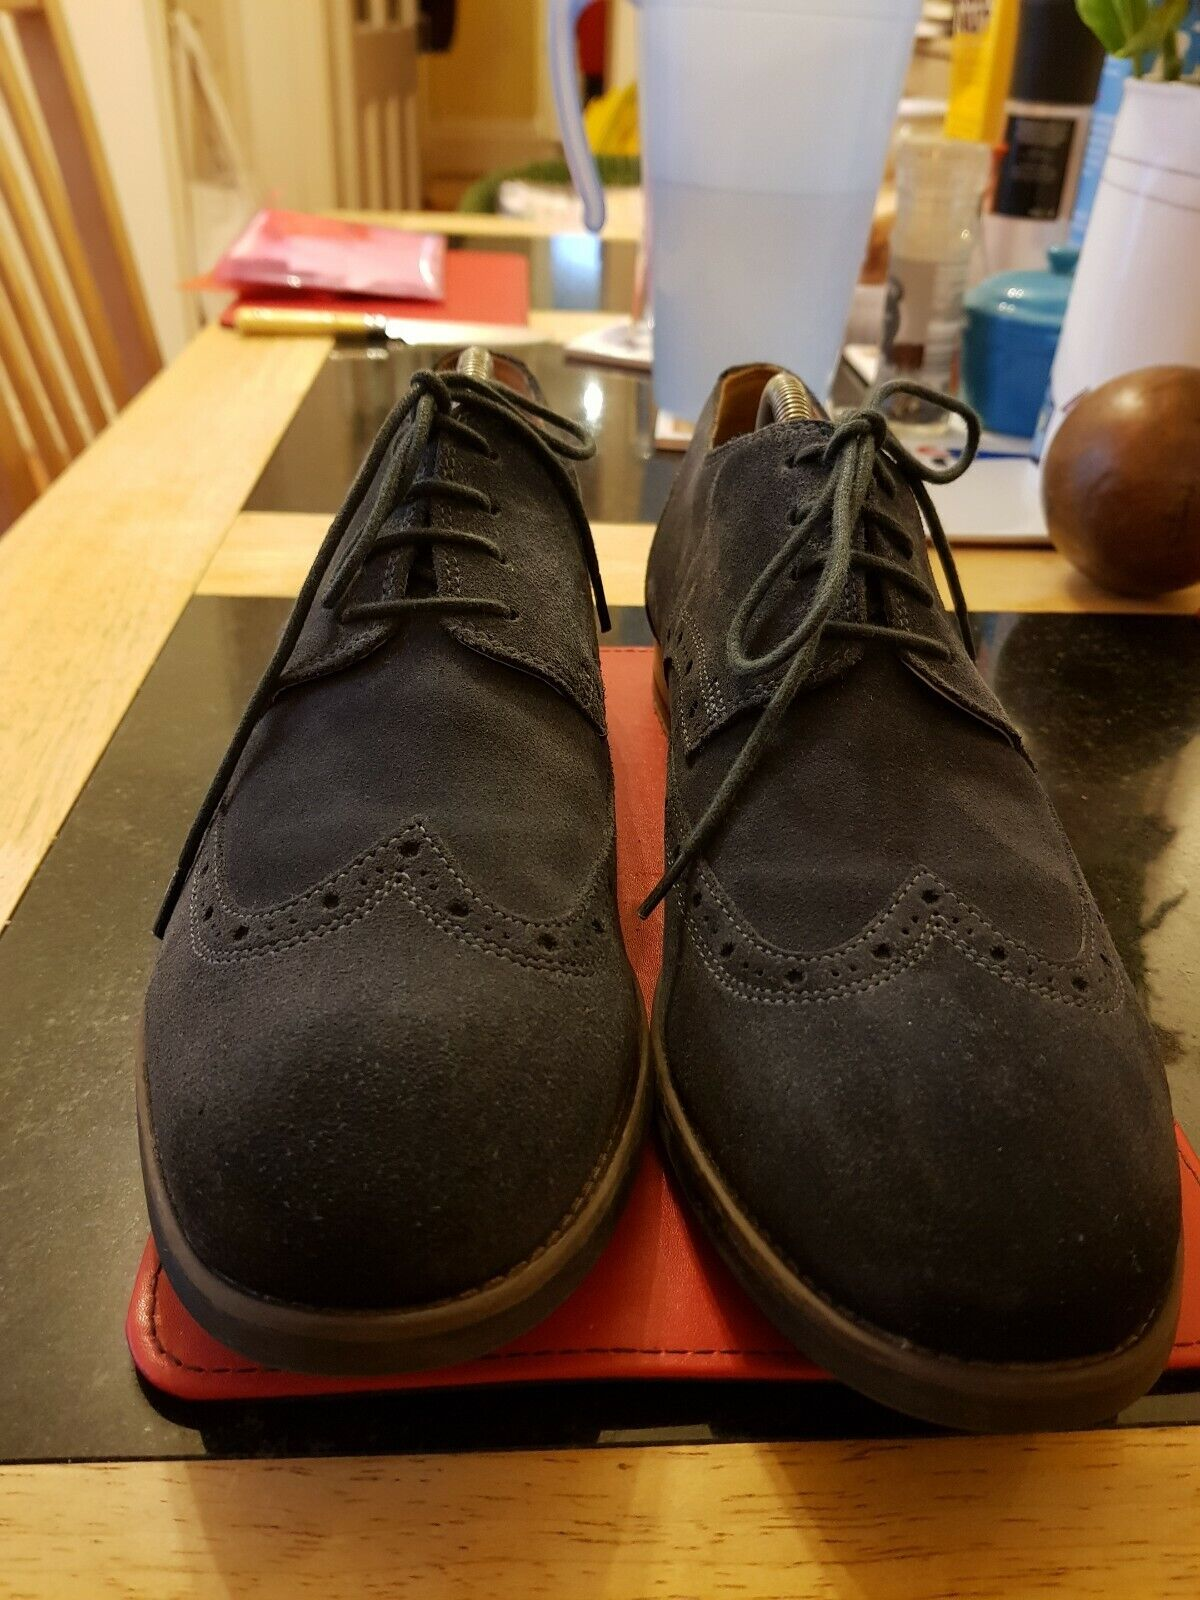 TOP QUALITY BLUE SUEDE BROGUES by CLARKS. SIZE 10